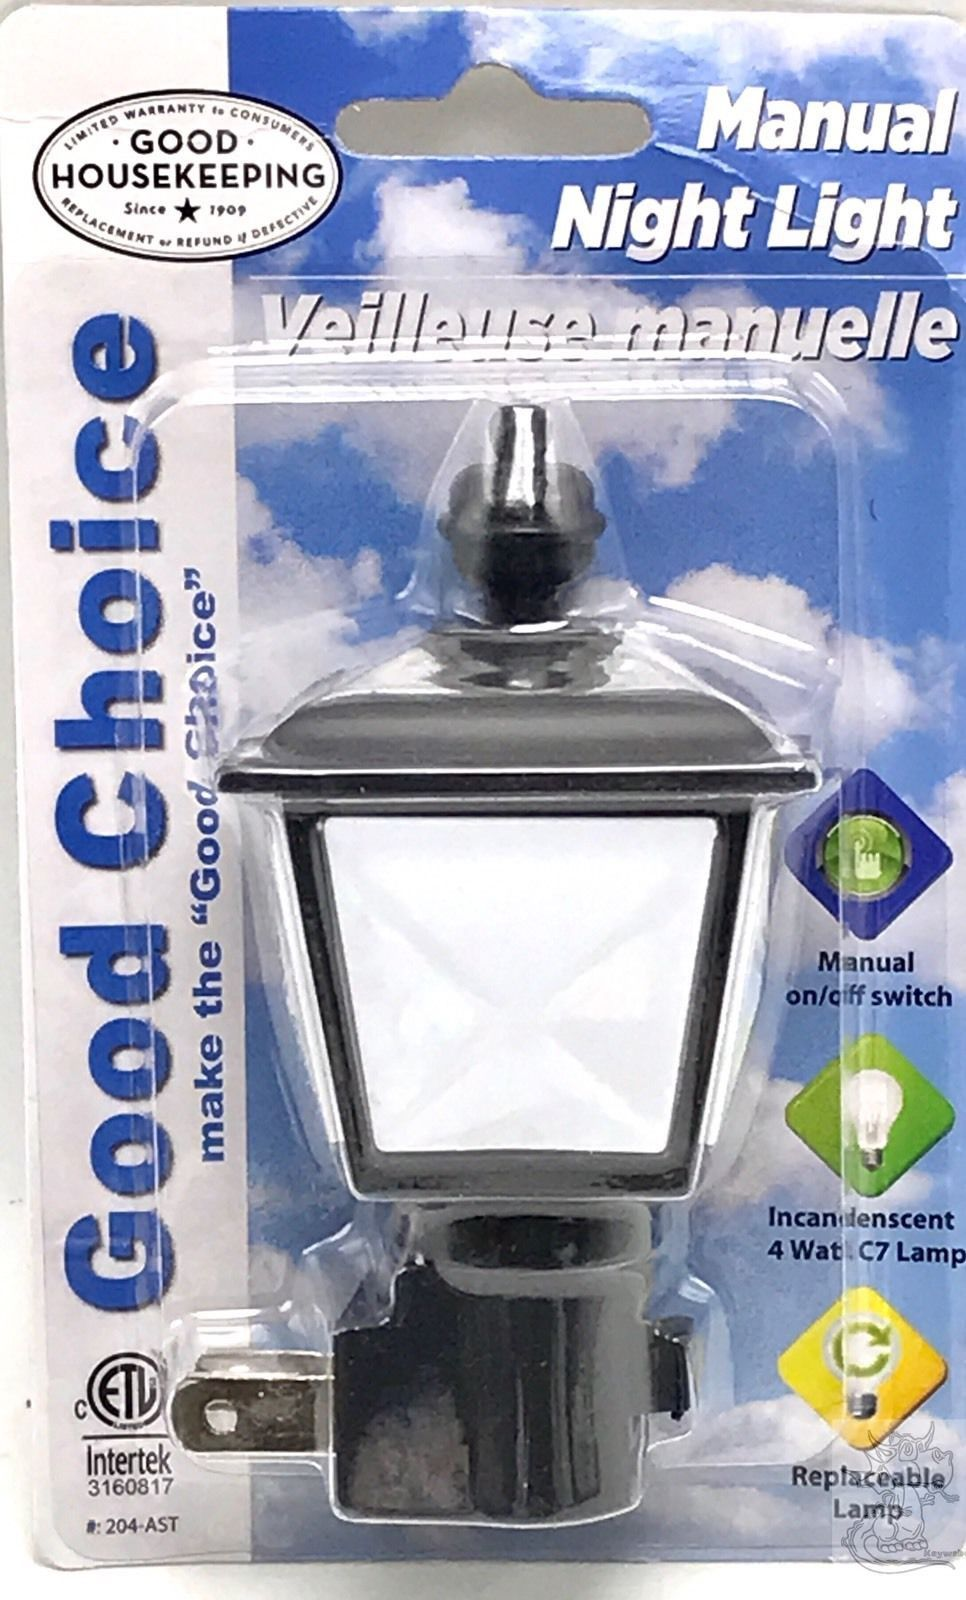 Night Light Lamp Cottage Shade Manual Off On Energy Efficient Standard Bulb  New